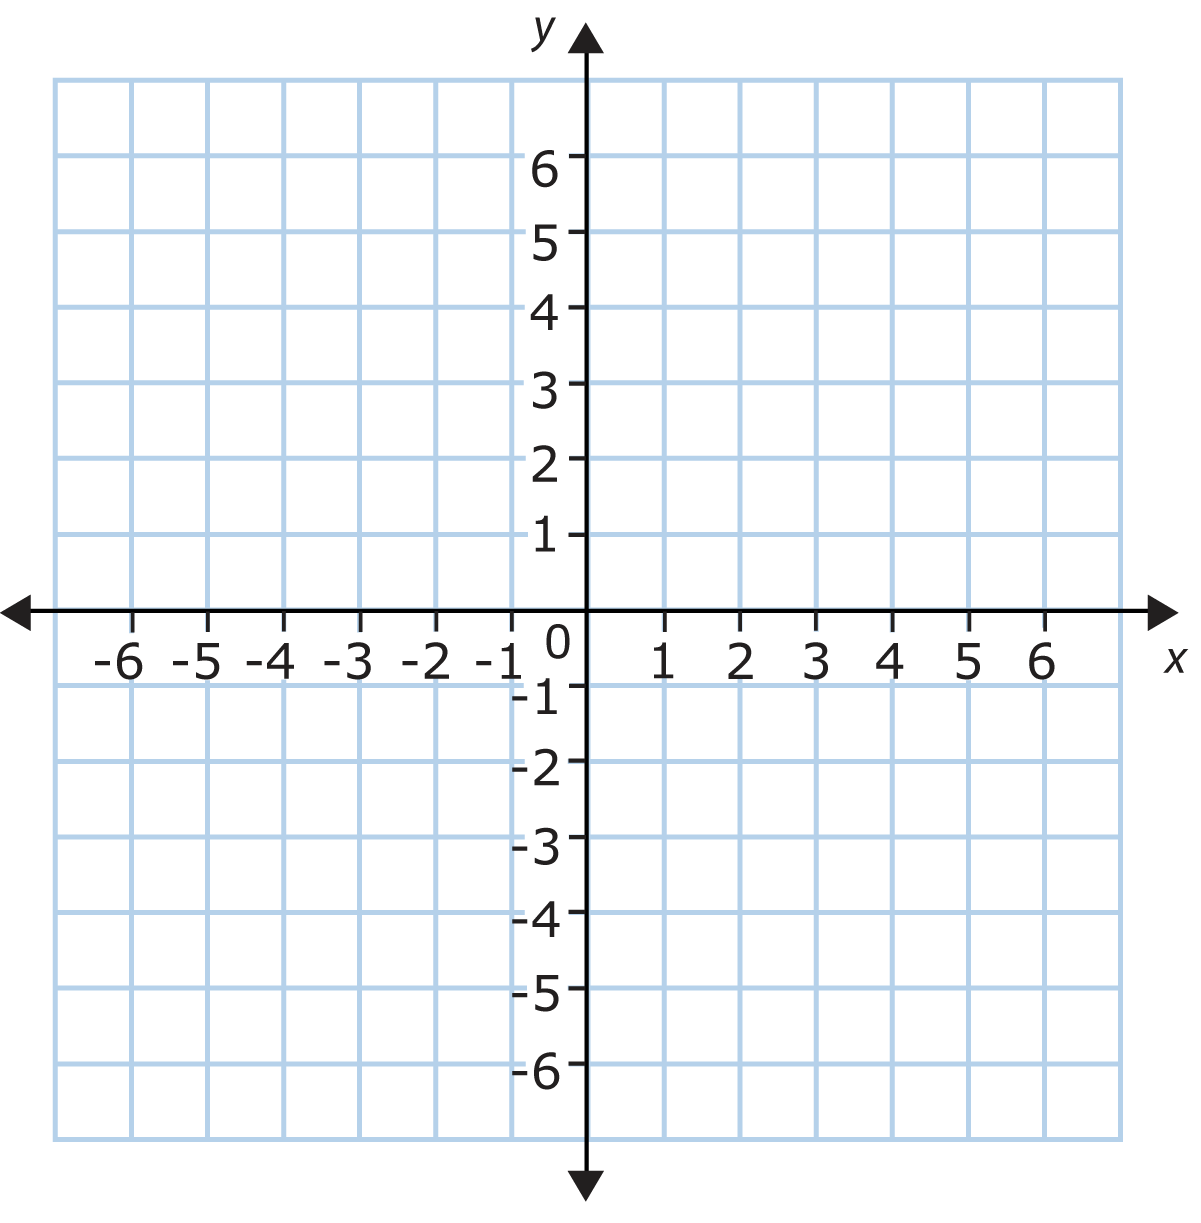 small resolution of Interactive coordinate plane for smartboards.   Coordinate plane